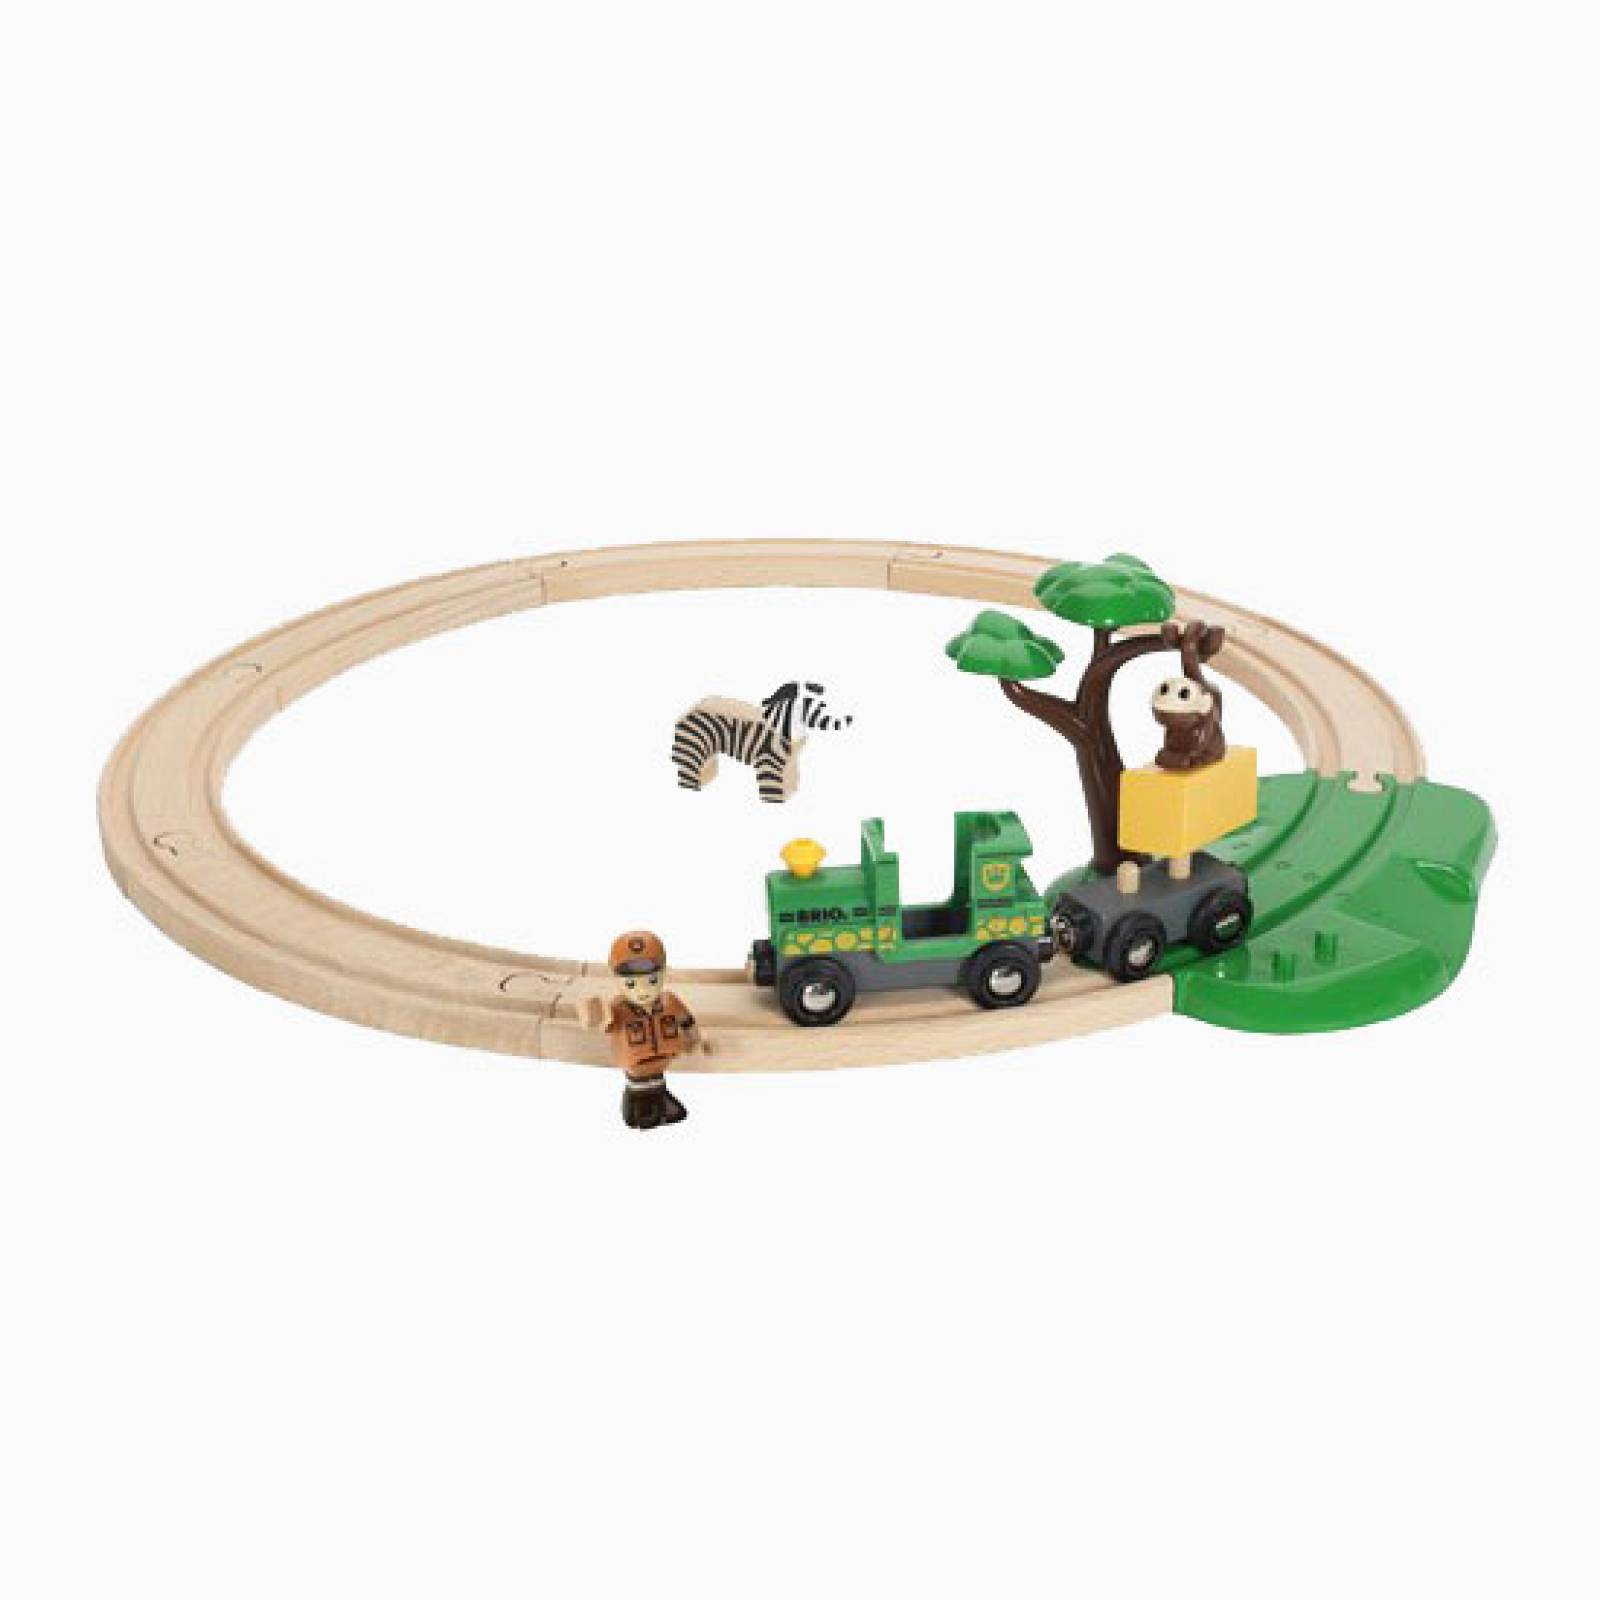 Safari Railway Set BRIO Wooden Railway Age 3+